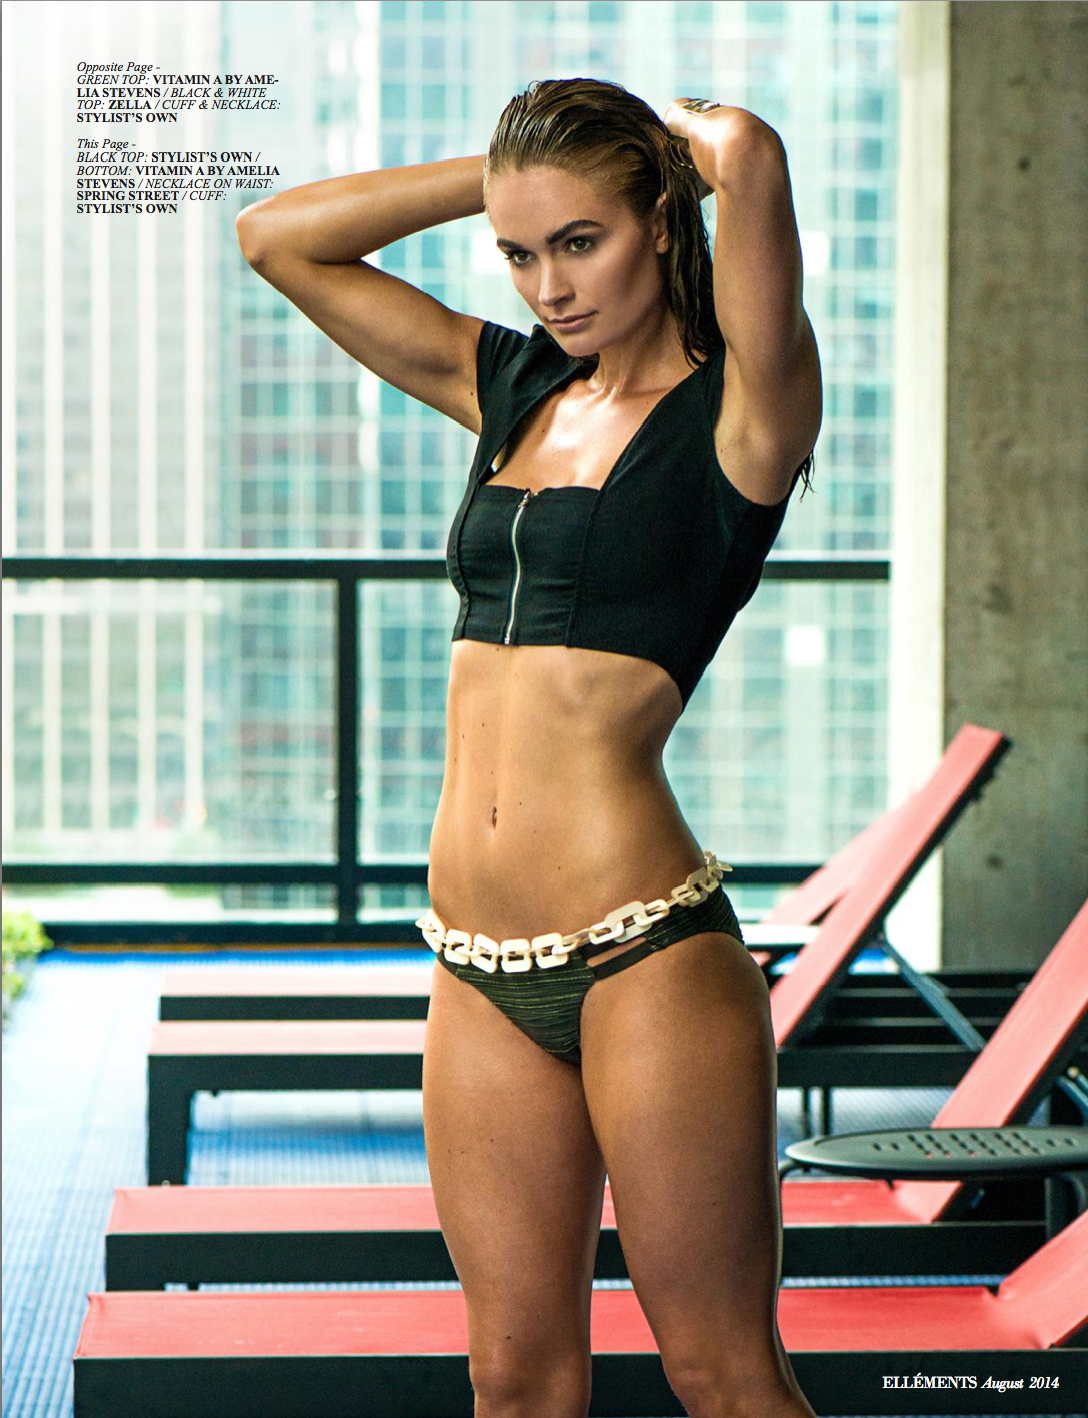 nina-ottolino-swim-city-ellements-magazine-chicago-editorial4